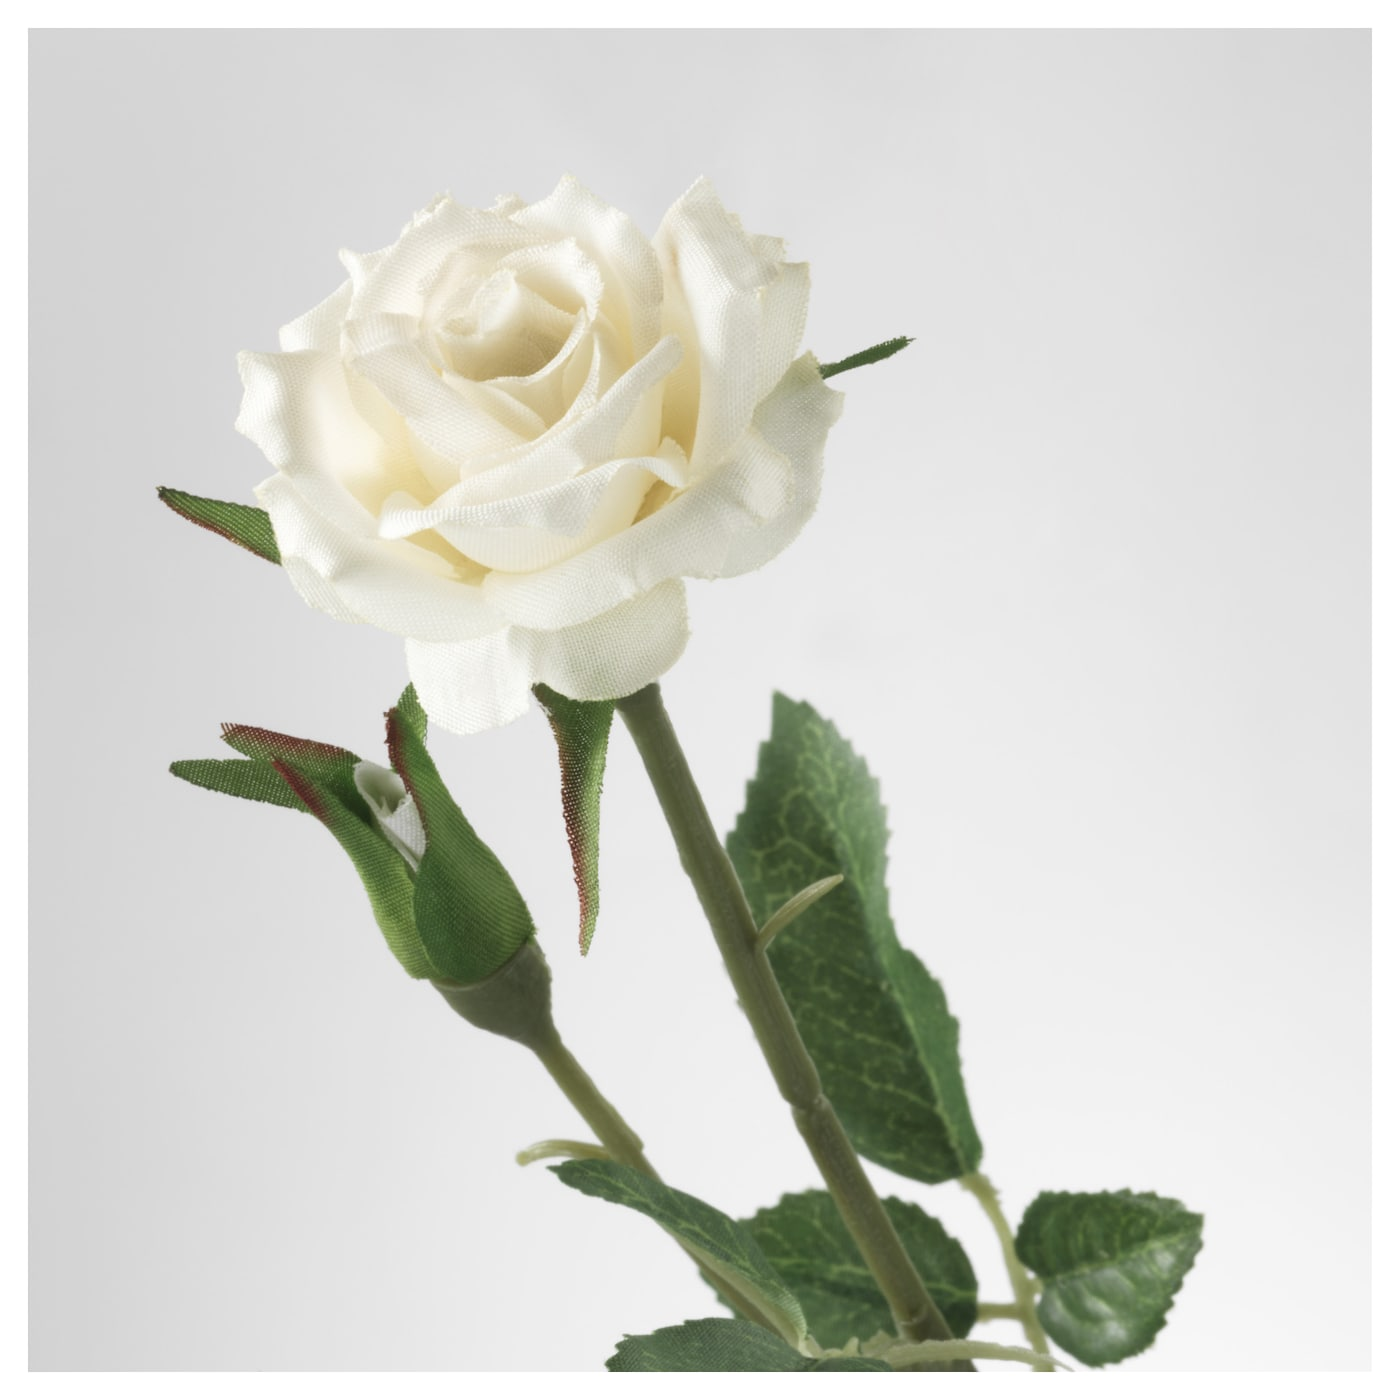 Smycka artificial flower rosewhite 30 cm ikea ikea smycka artificial flower the stem can be shortened by means of cutting pliers mightylinksfo